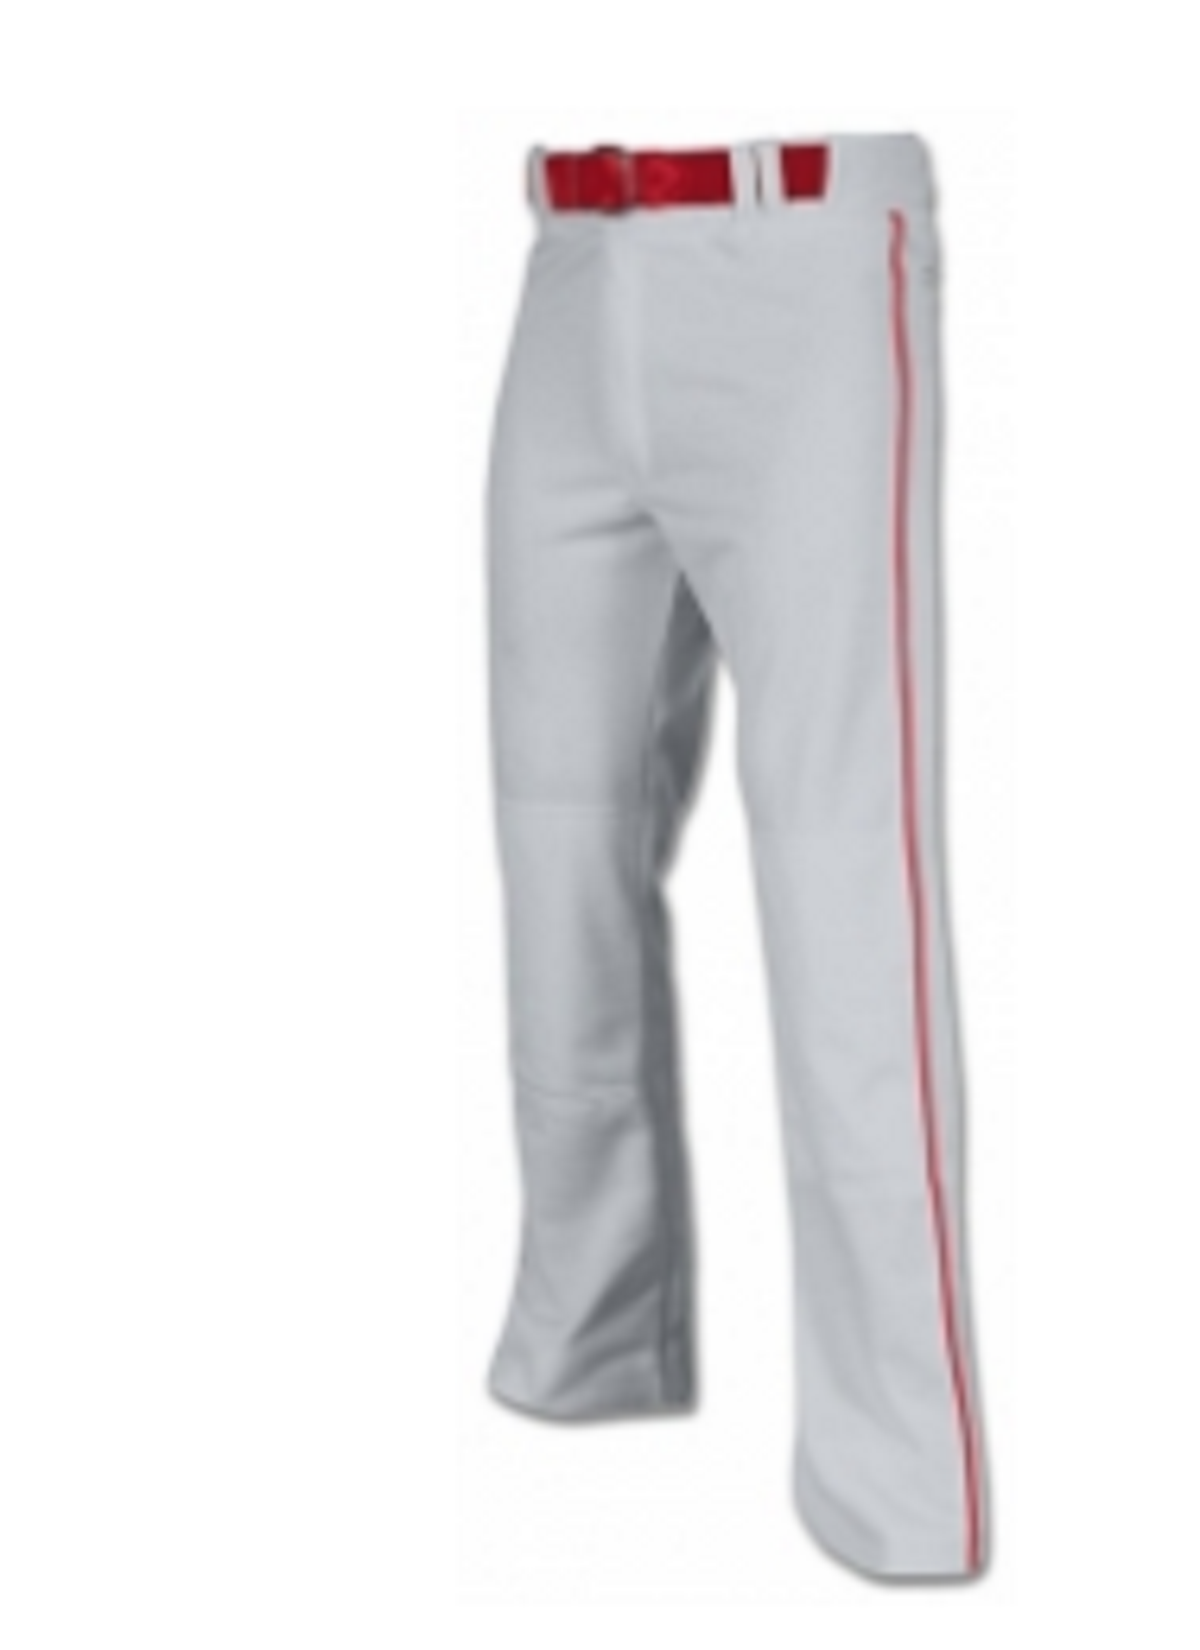 Baseball Uniform Trousers Model No TSI­5509